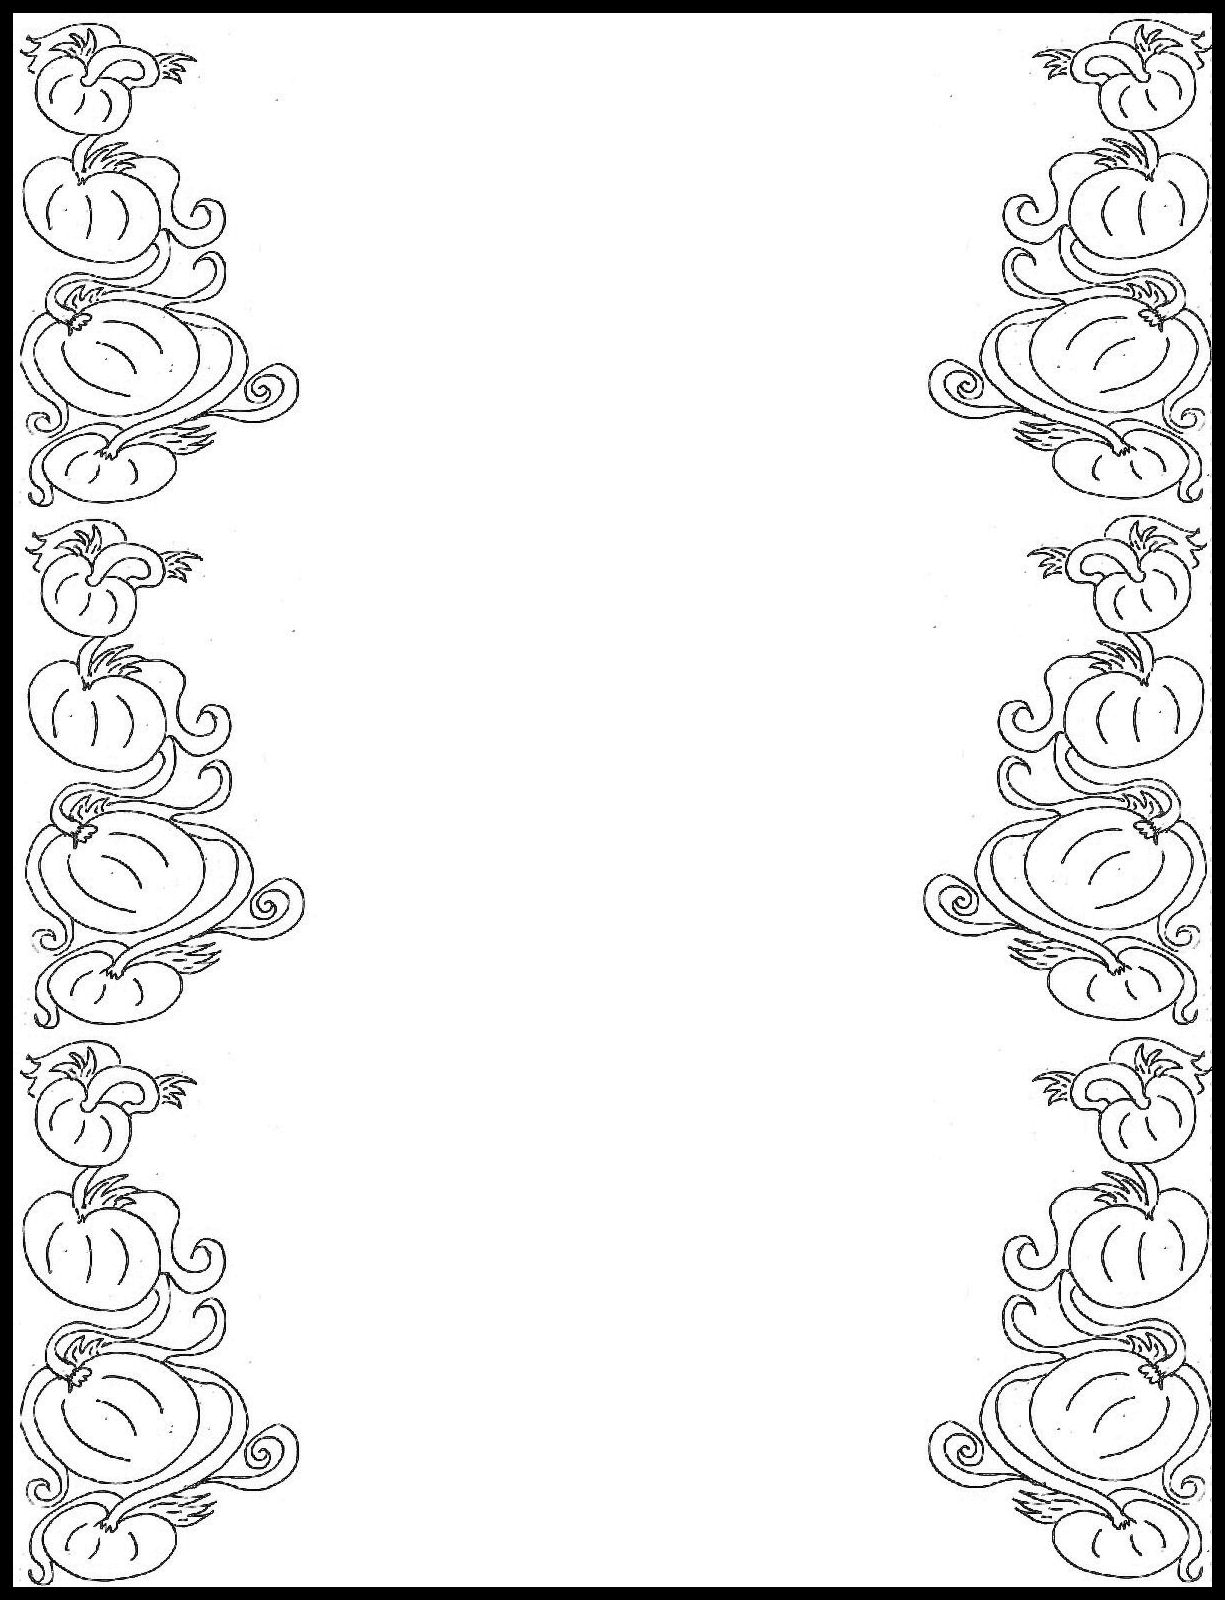 Free Printable Paper Border Designs Christian - Clipart Library - Free Printable Christian Art